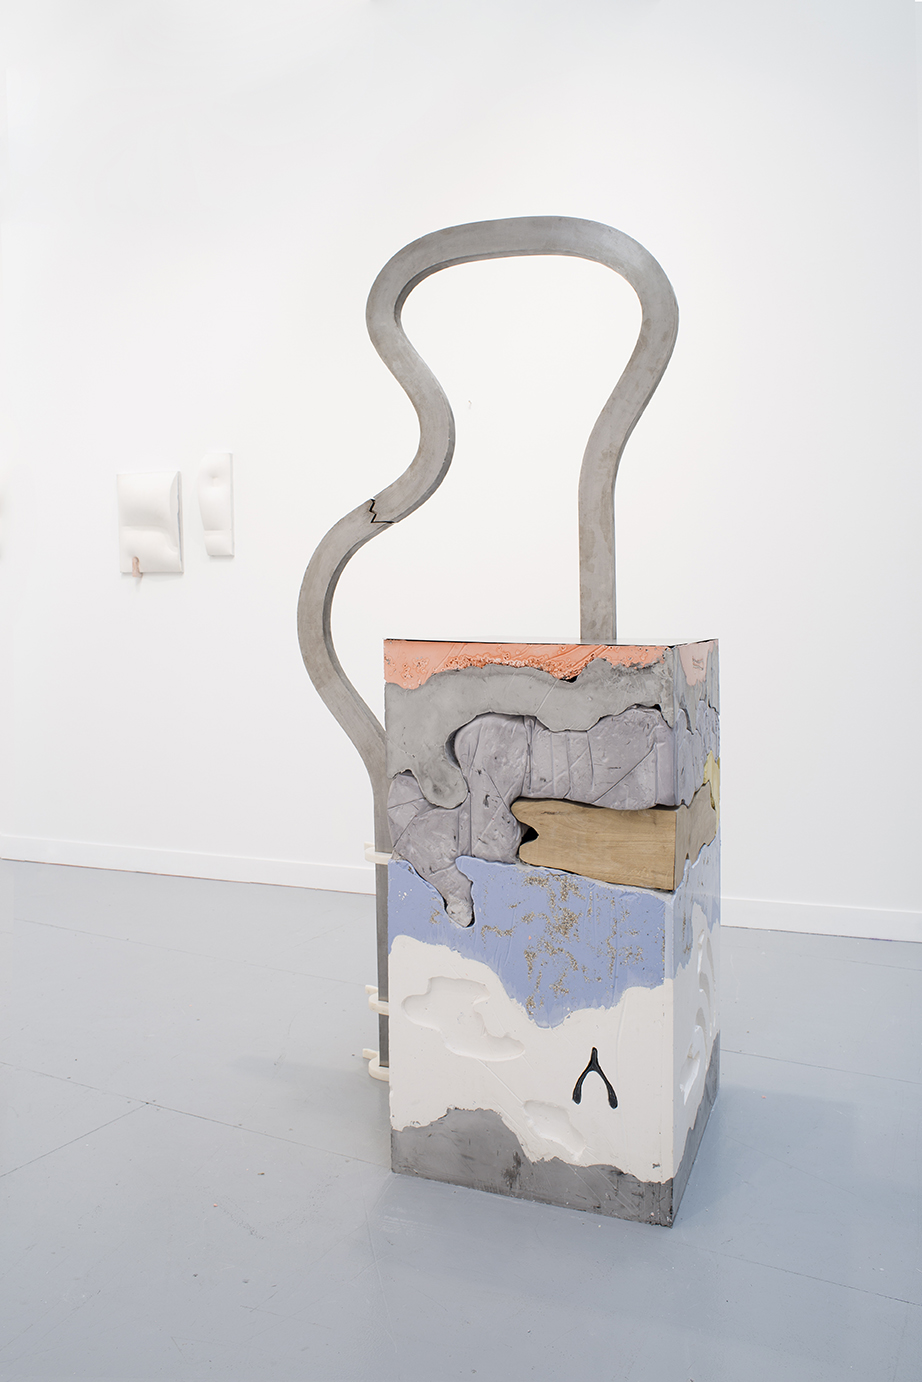 Holly Hendry  Attend to Your Configuration , 2017 plaster, jesmonite, oak, pigment, steel, aluminum, marble, birch ply, cement, grit, 170 x 55 x 65 cm